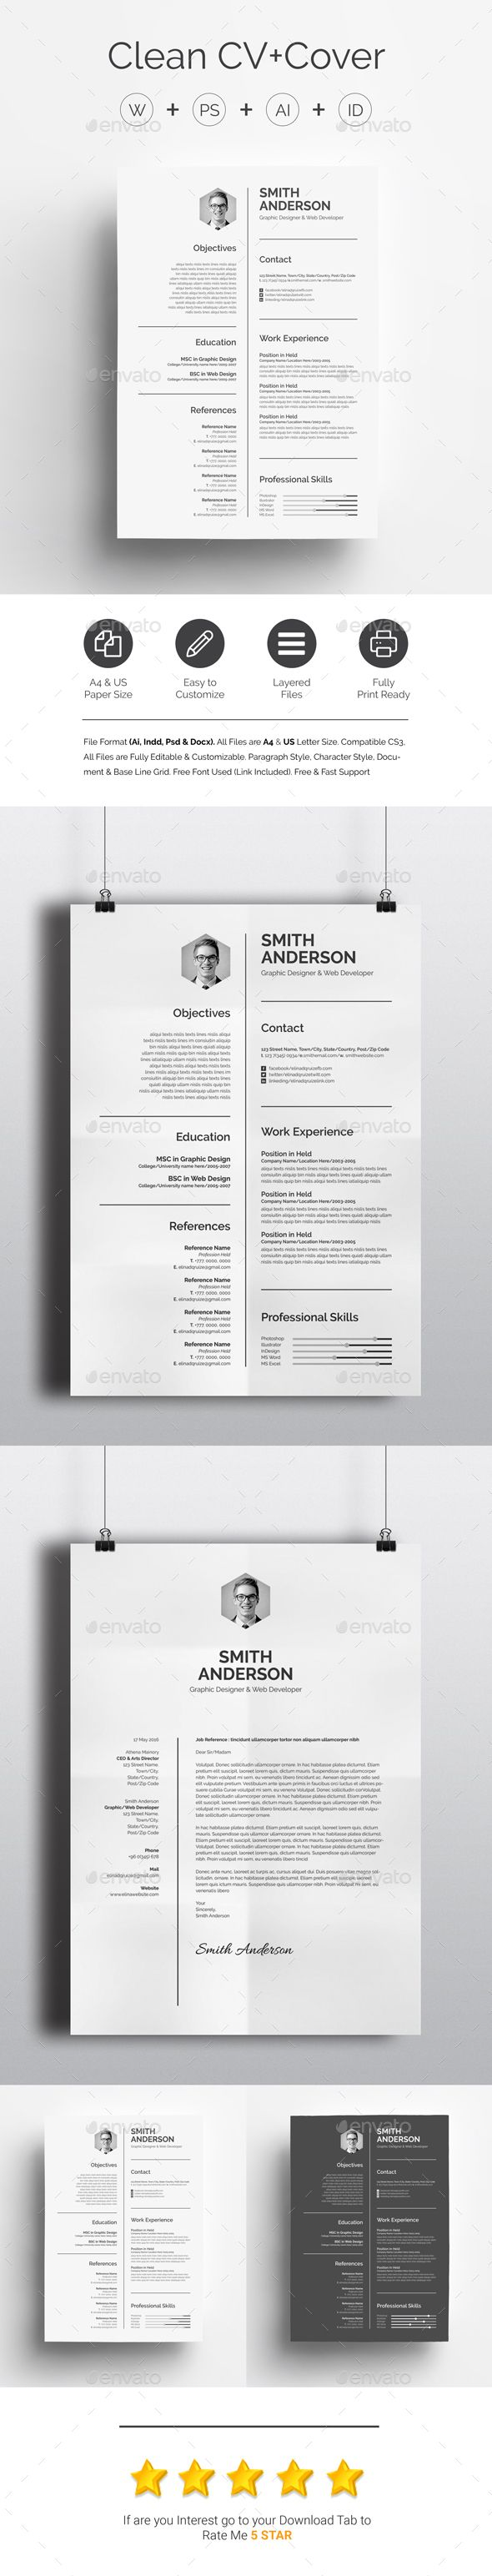 Clean #CV+Cover #Template PSD, Vector EPS, InDesign INDD, AI ...